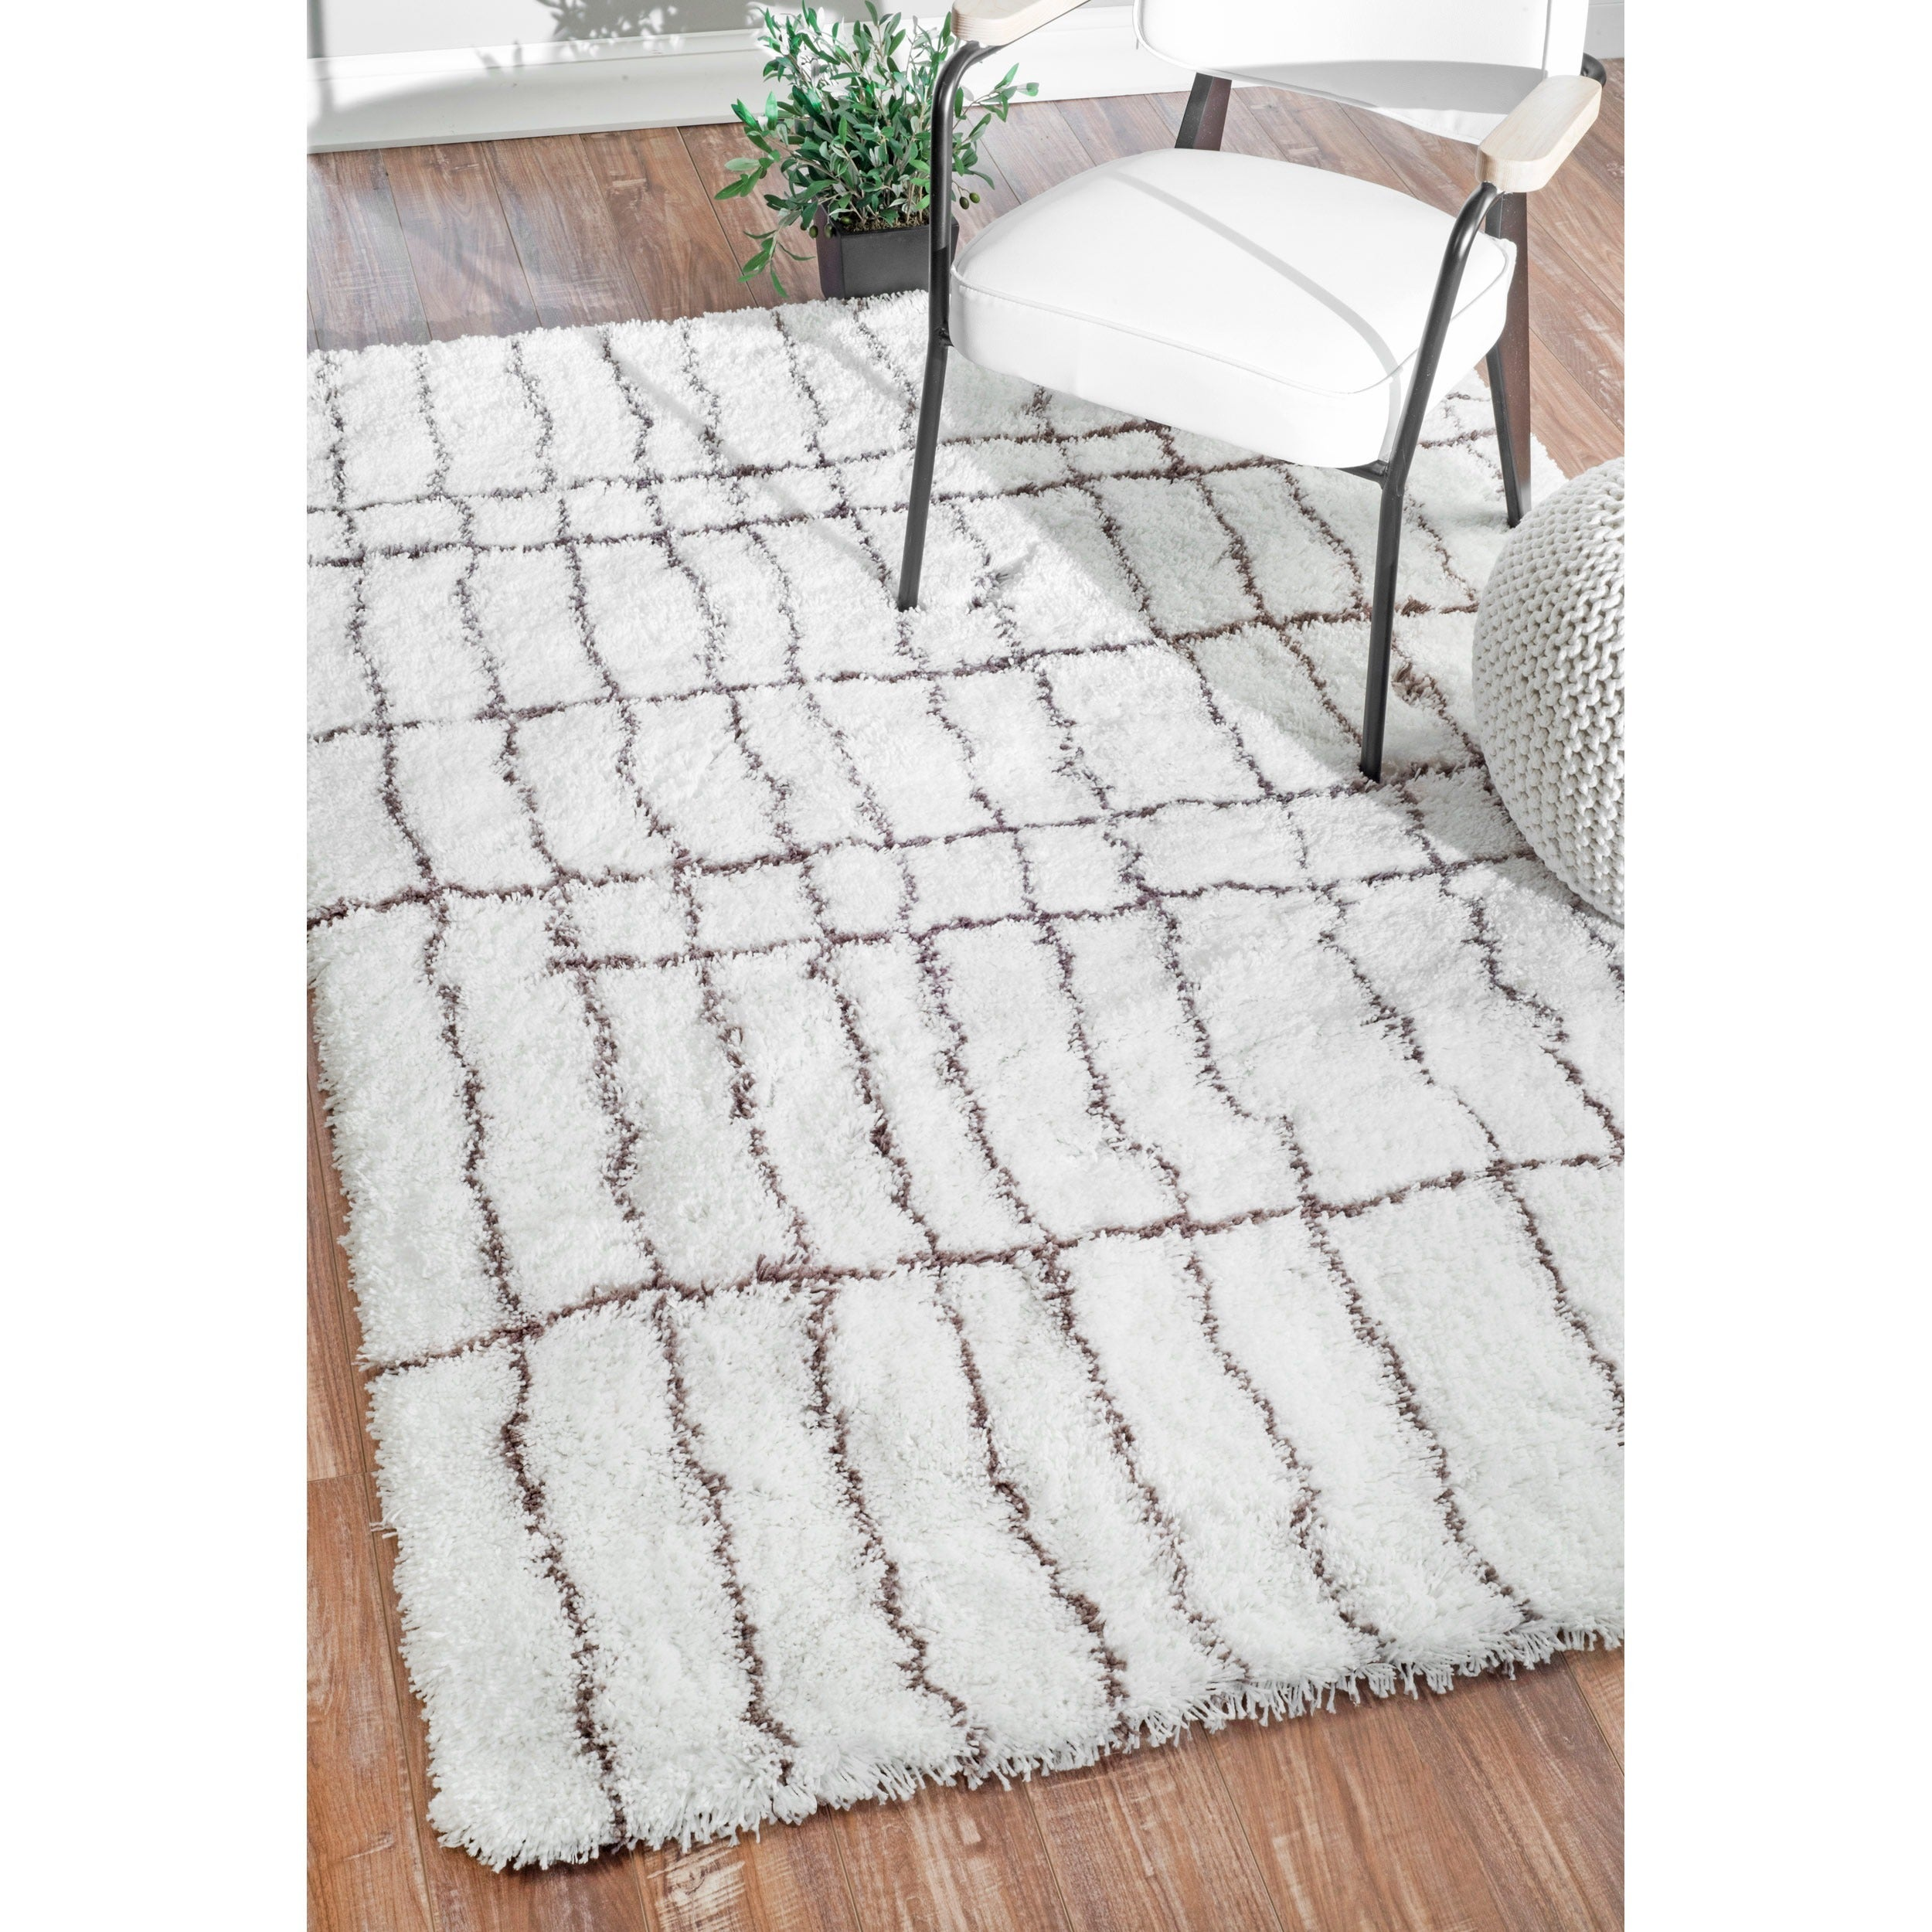 Return shipping cost for an area rug - m